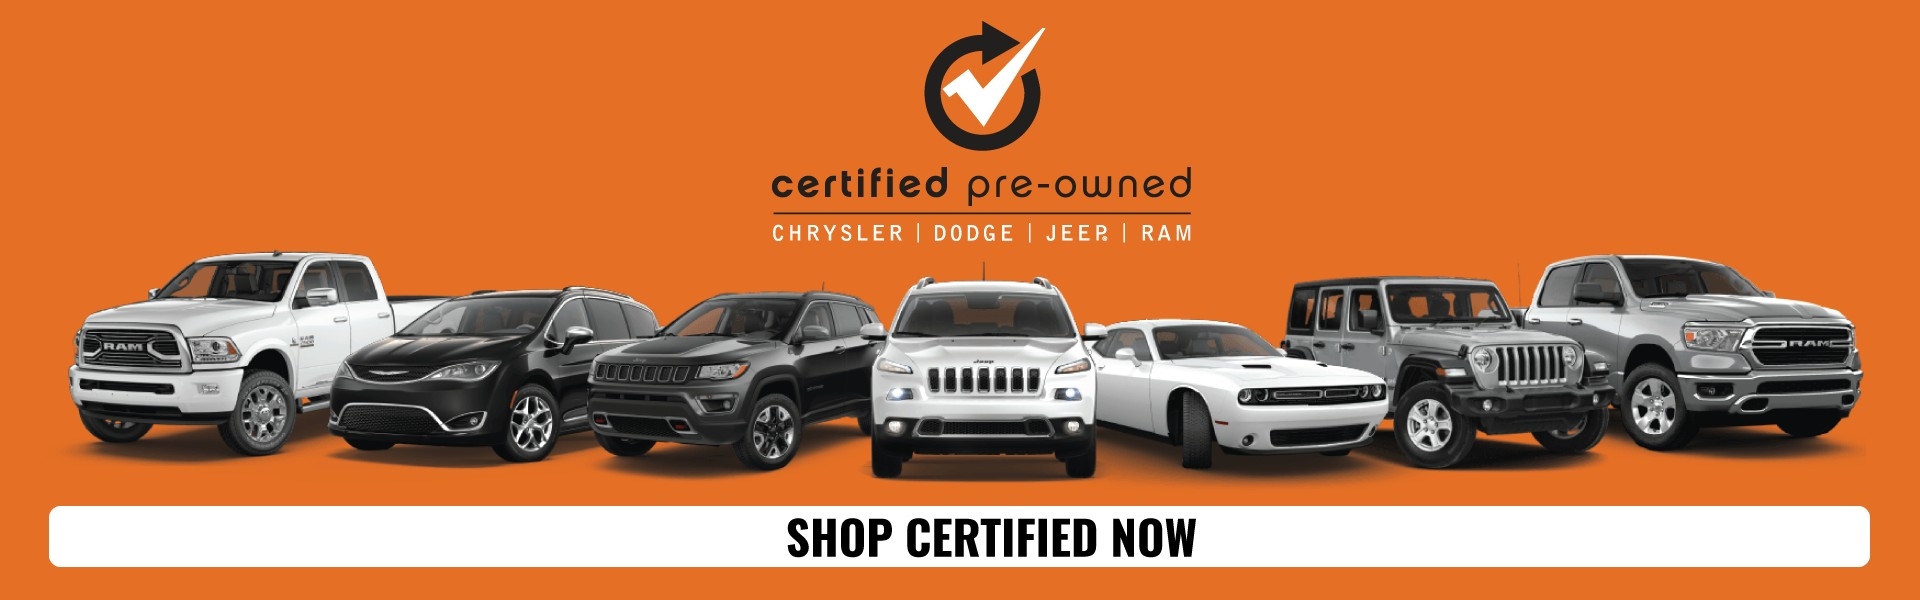 Certified Pre-Owned. Chrysler, Dodge, Jeep, and Ram. Shop certified now.